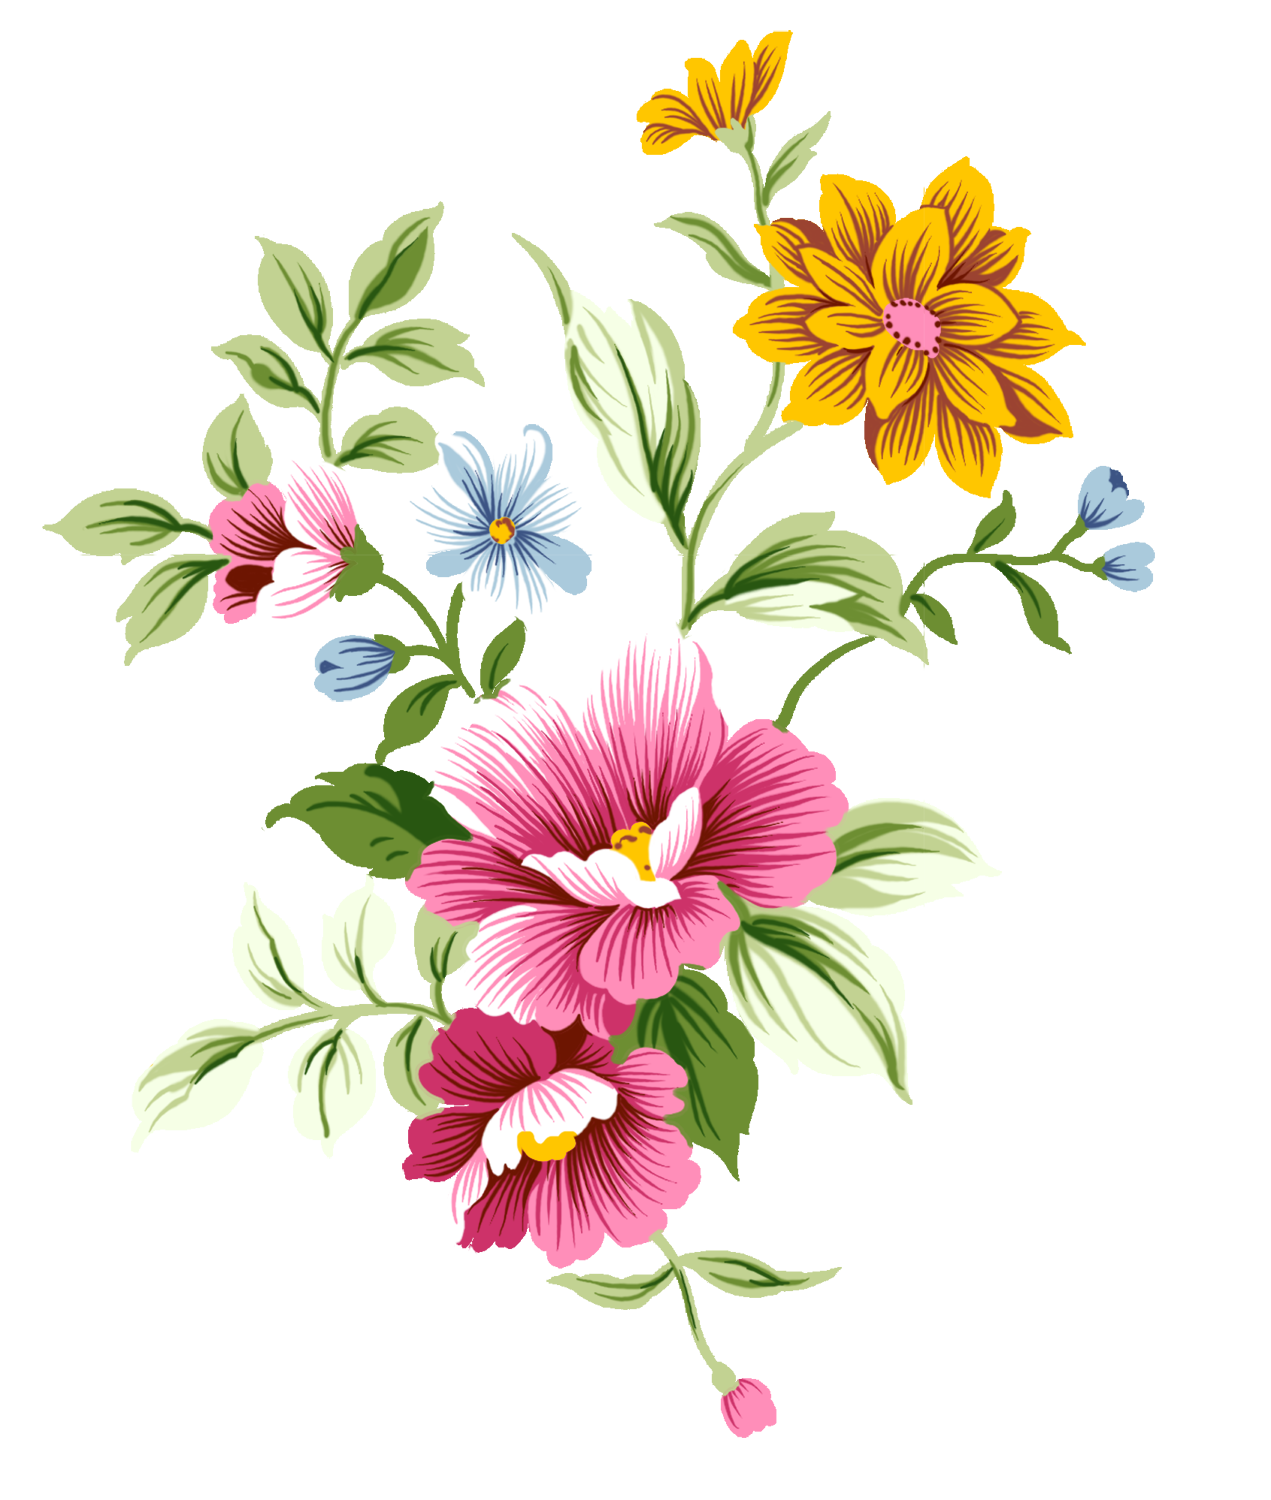 Abstract Flower Picture PNG Image - Flower HD PNG